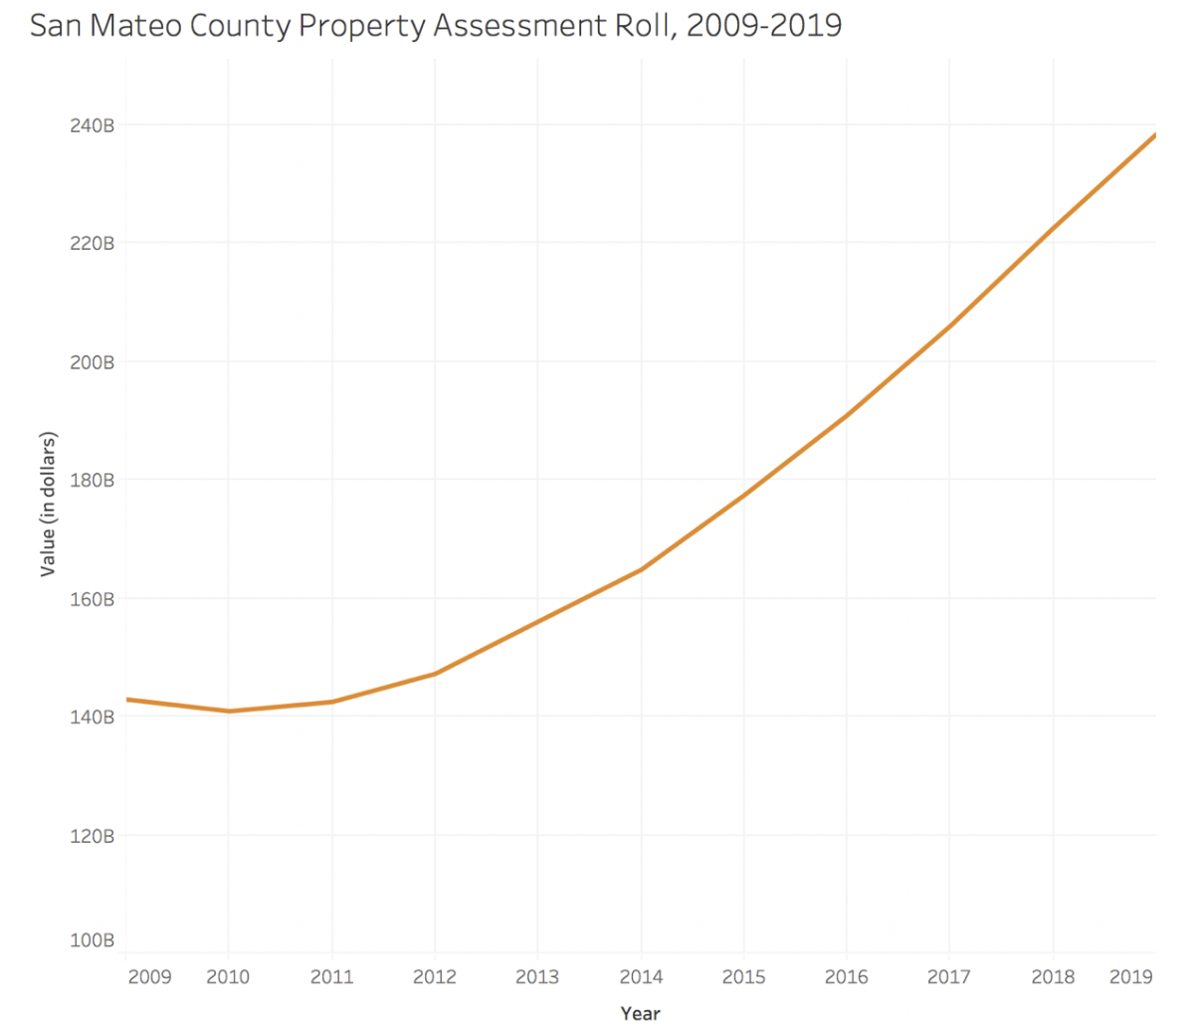 Property value over time